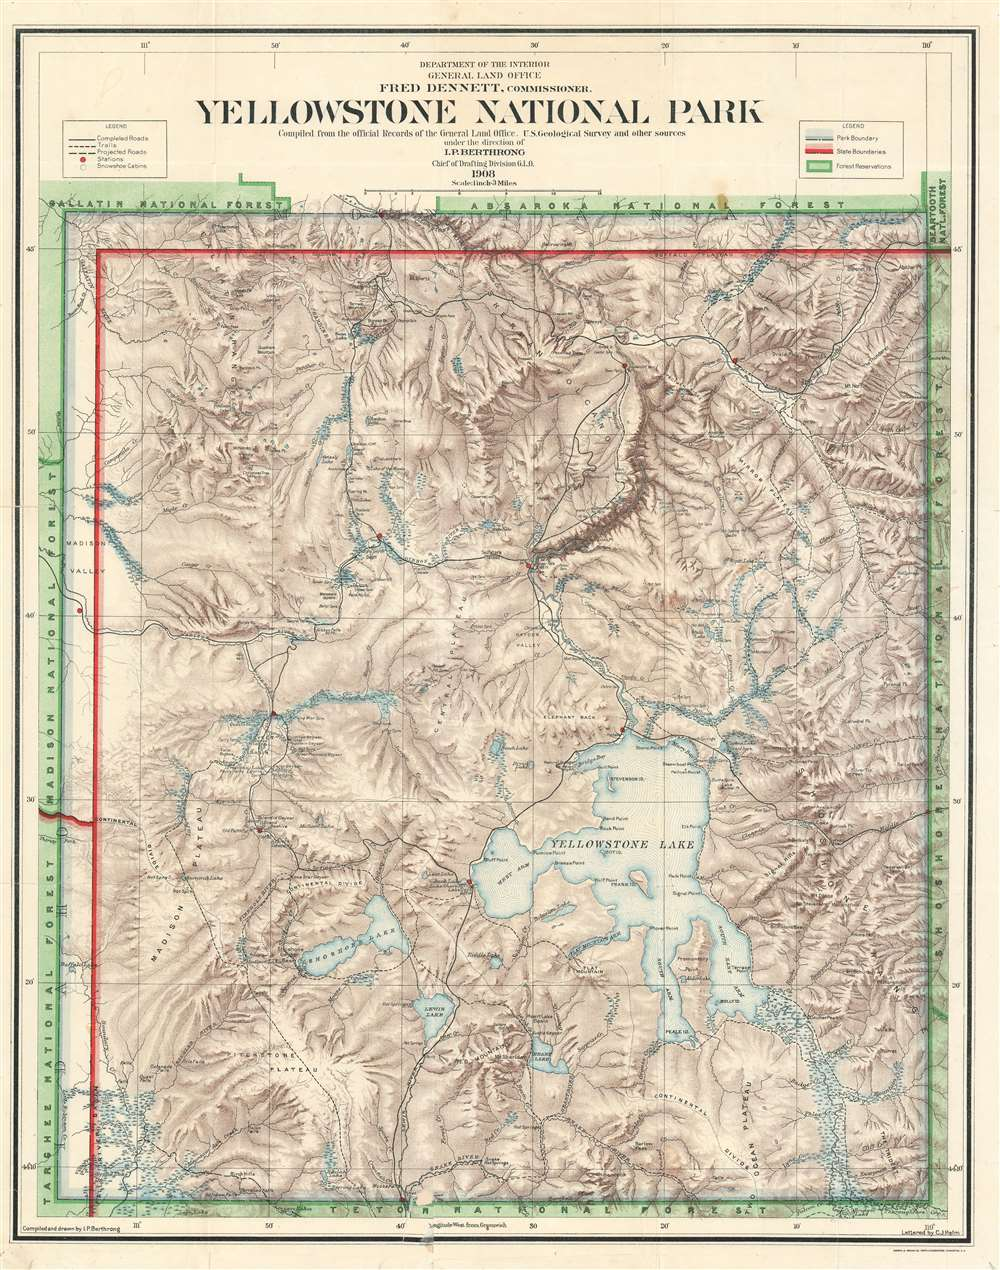 Yellowstone National Park Compiled from the official Records of the General Land Office, U.S. Geological Survey and other sources under the direction of I.P. Berhrong Chief of Drafting Division G. L. O. 1908.